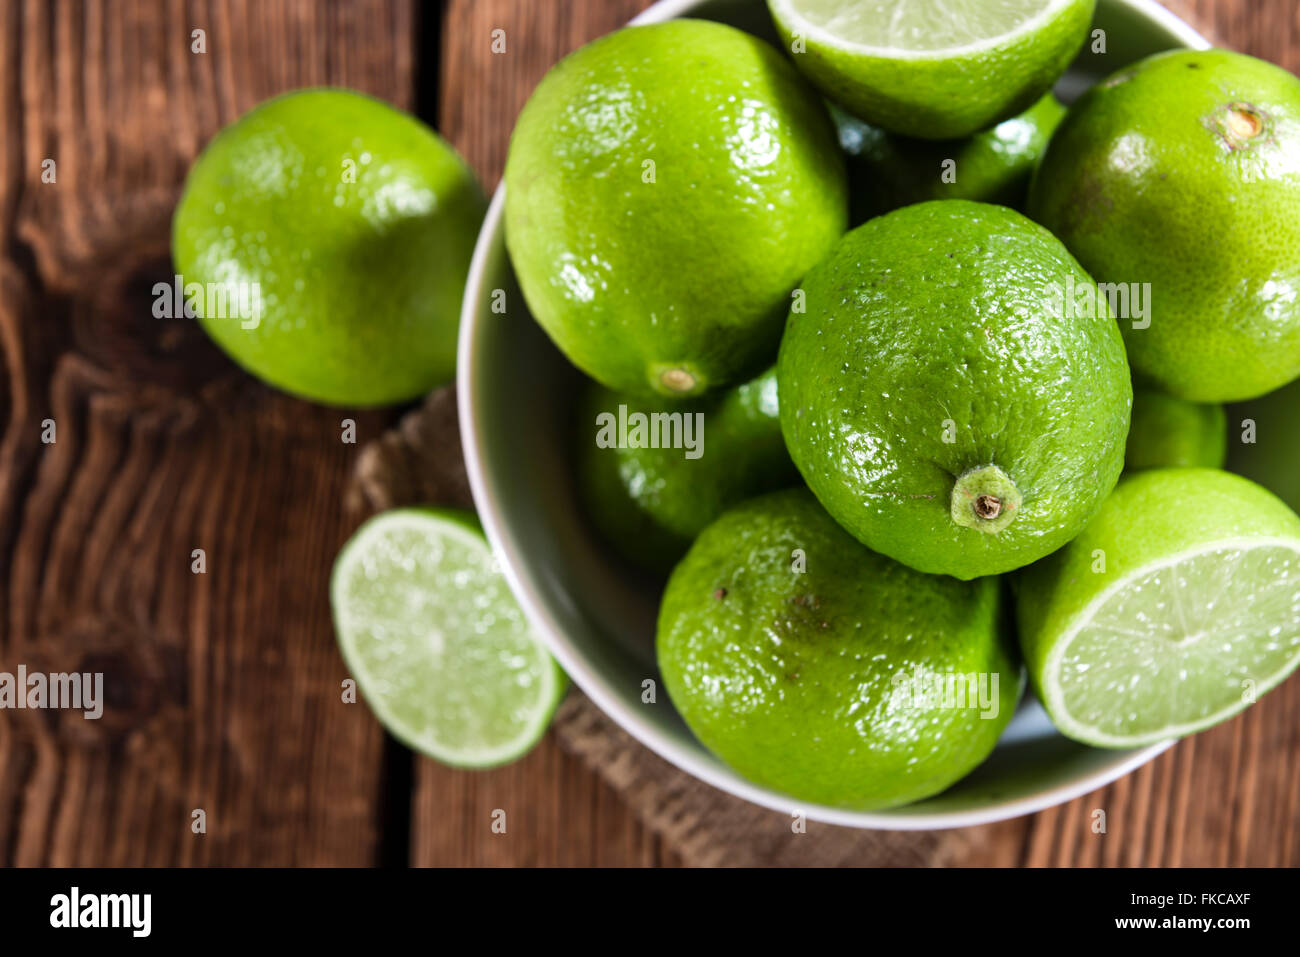 Limes on vintage wooden background (close-up shot) - Stock Image